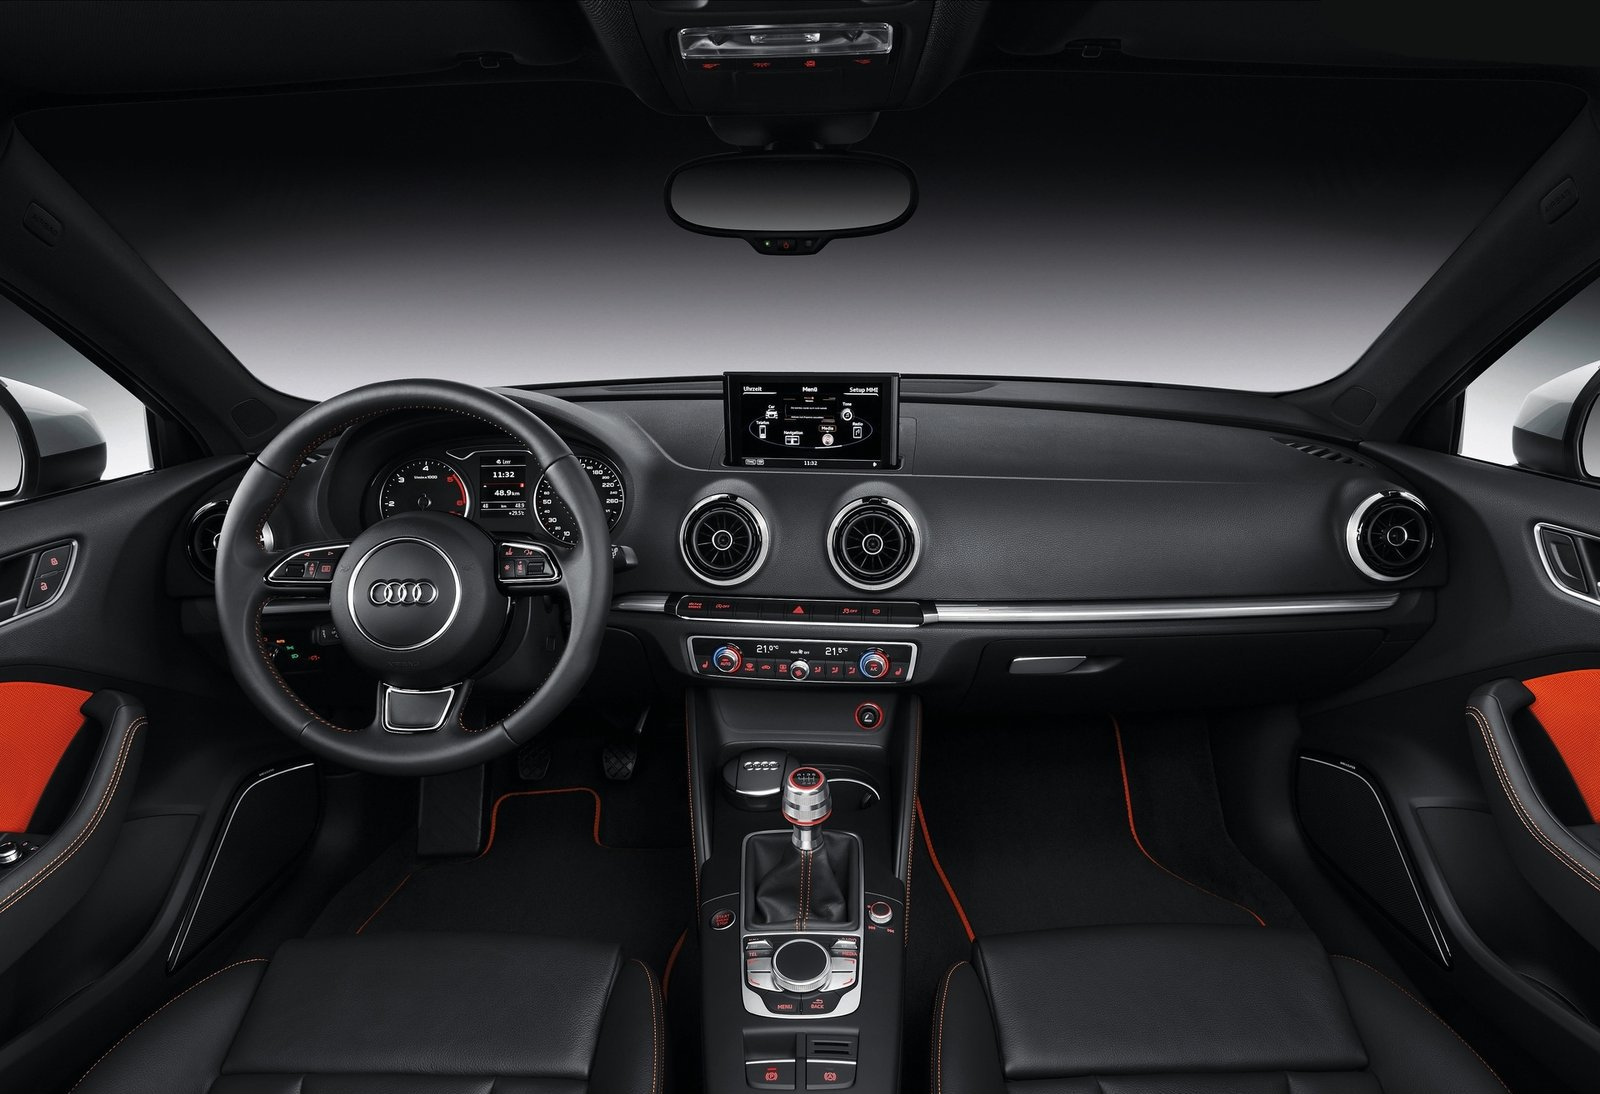 Intrieur 1 9 audi a3 sportback s line 2014 http for Interieur q3 s line